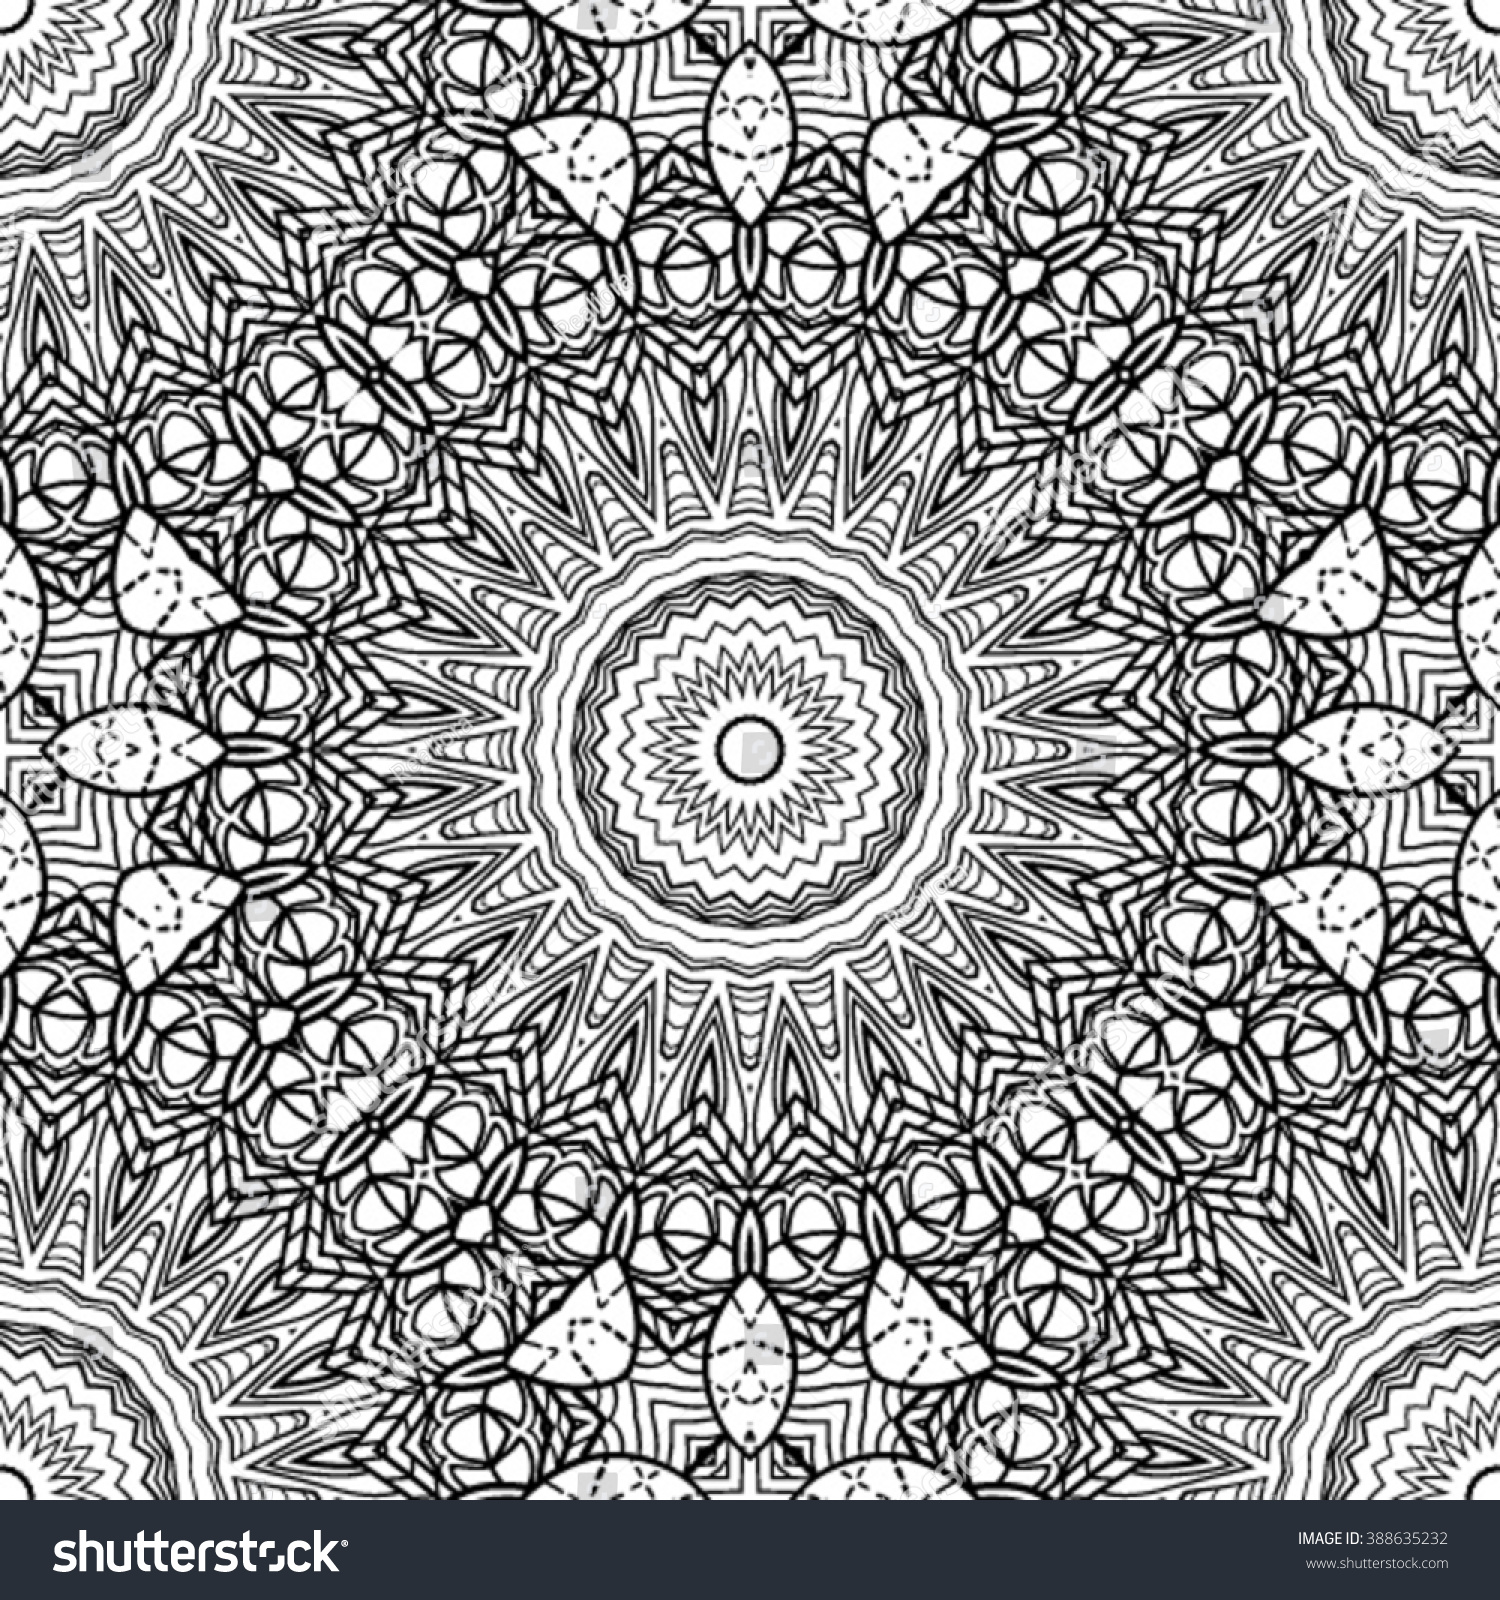 Zendoodle coloring pages zendoodle or zentangle texture or Kaleidoscope Coloring Pages Dog Coloring Pages Zendoodle Giraffe